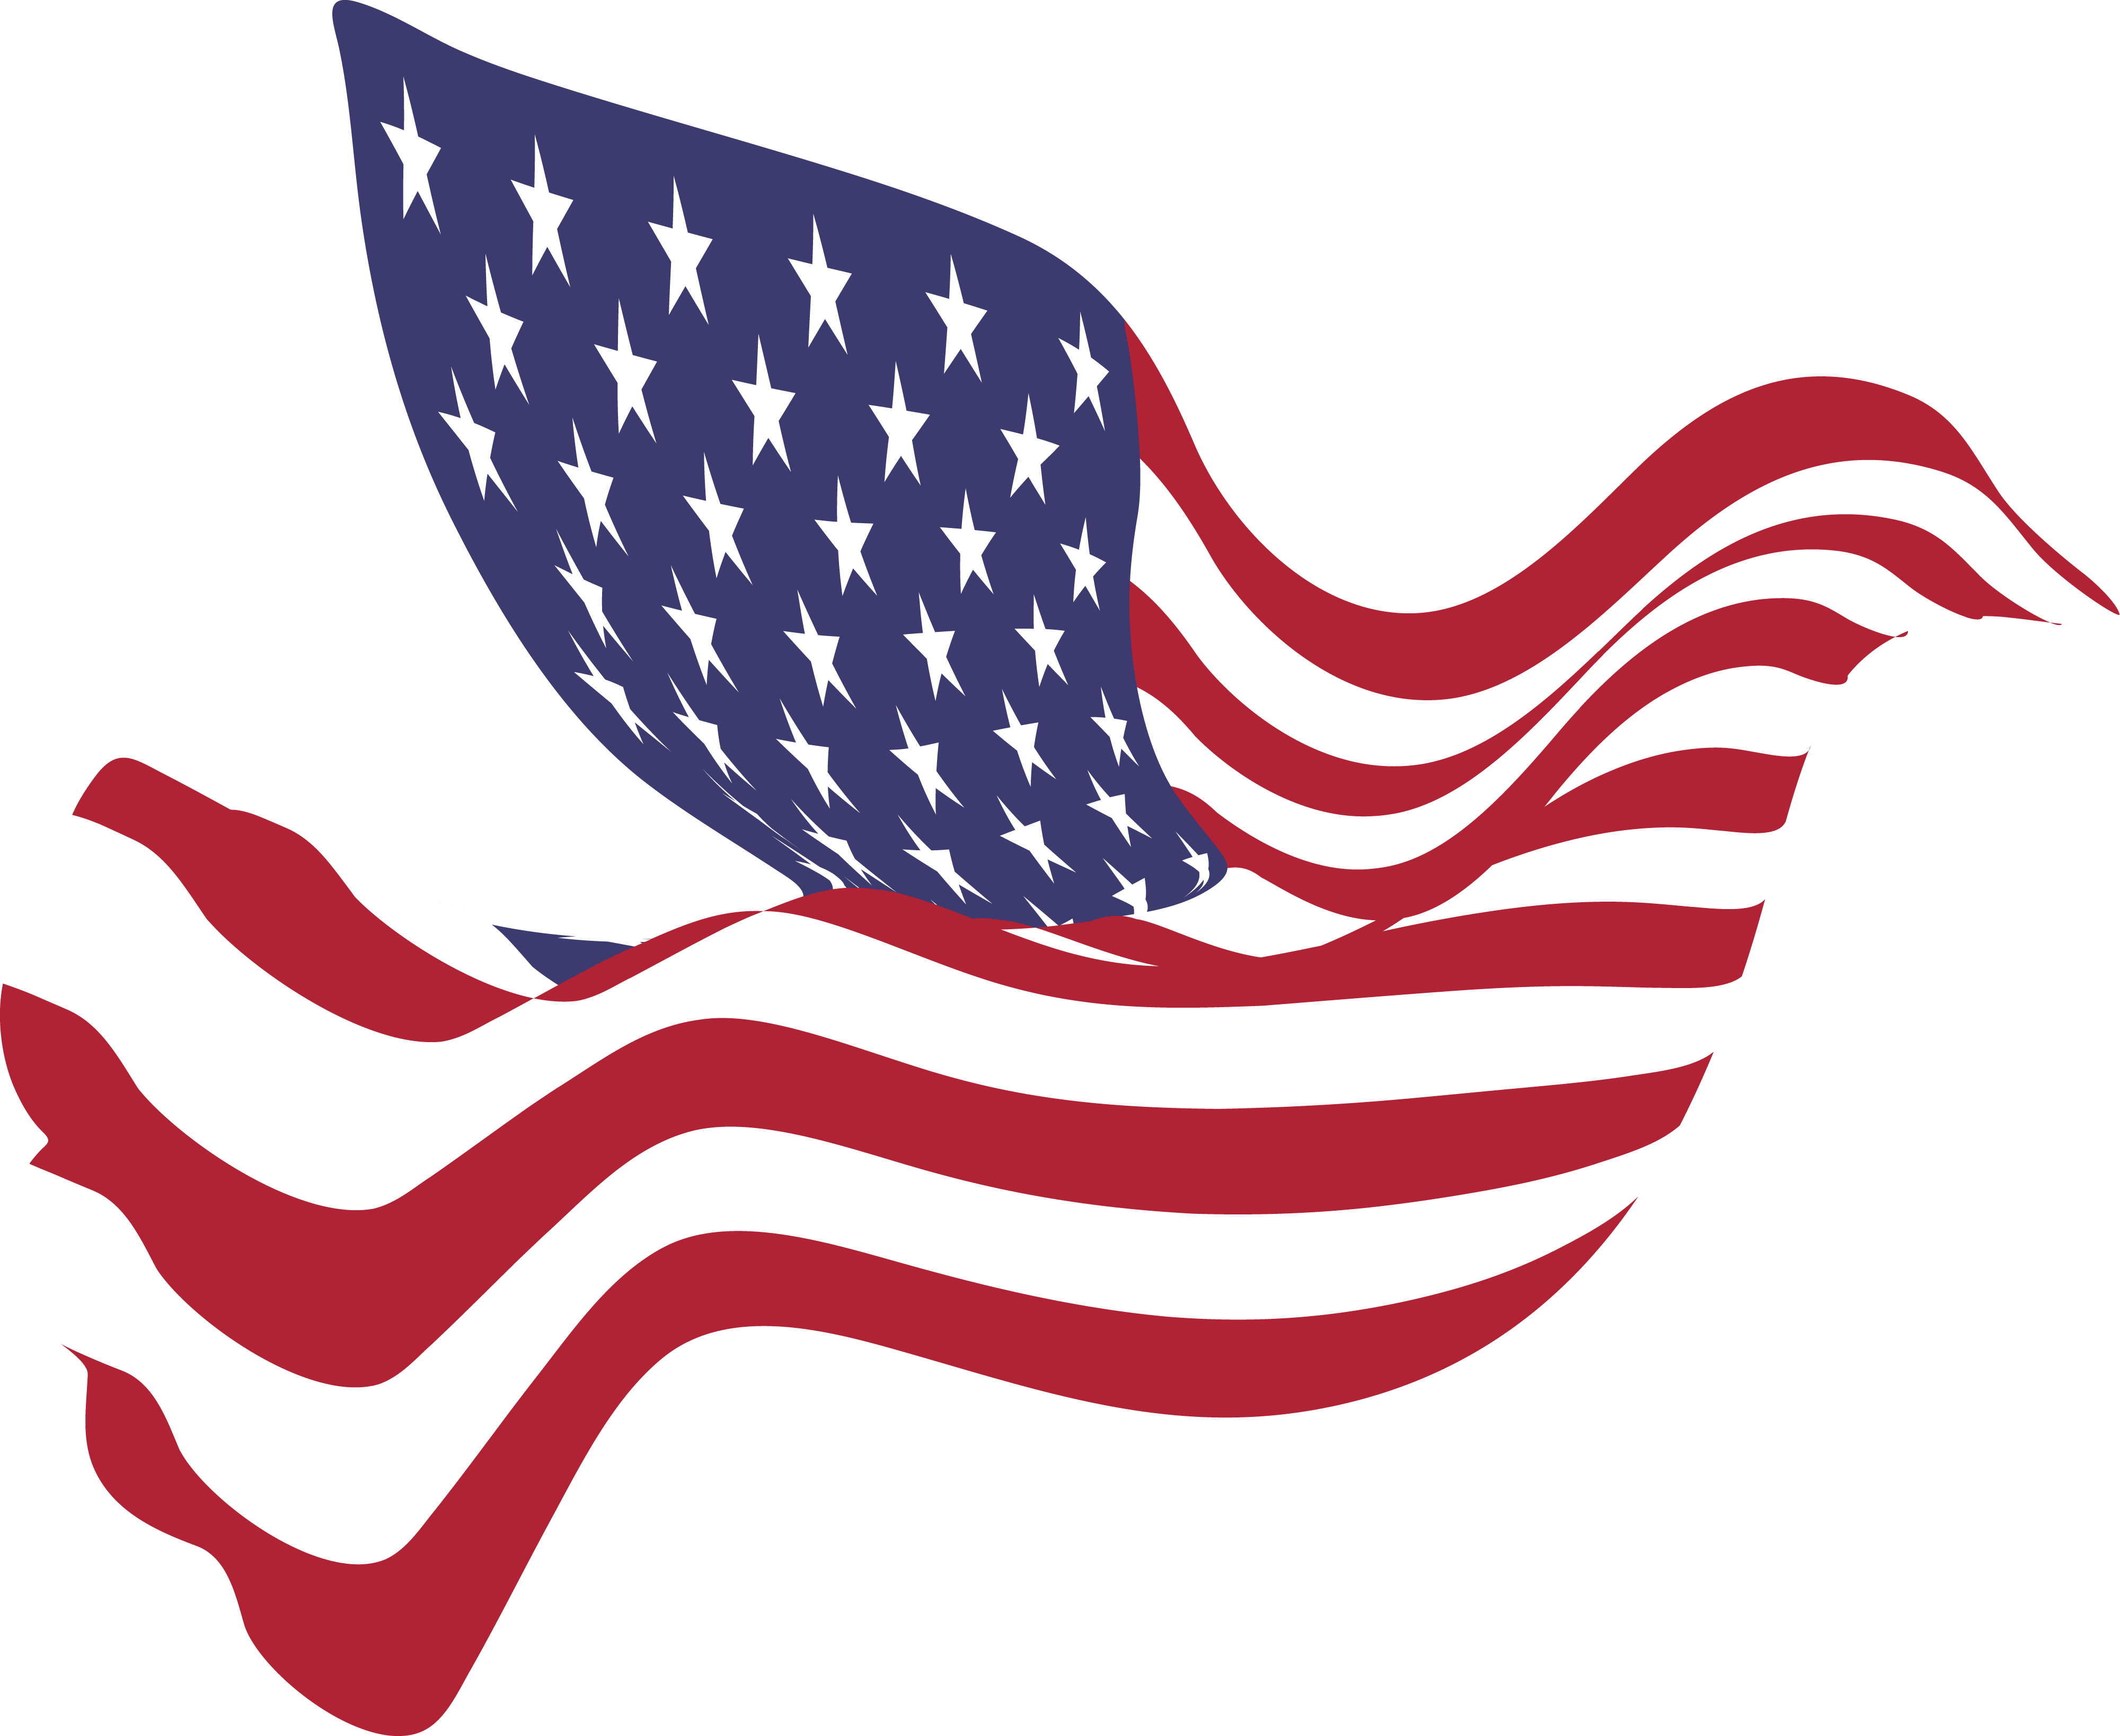 4000x3275 15 Patriot Vector Tattered American Flag For Free Download On